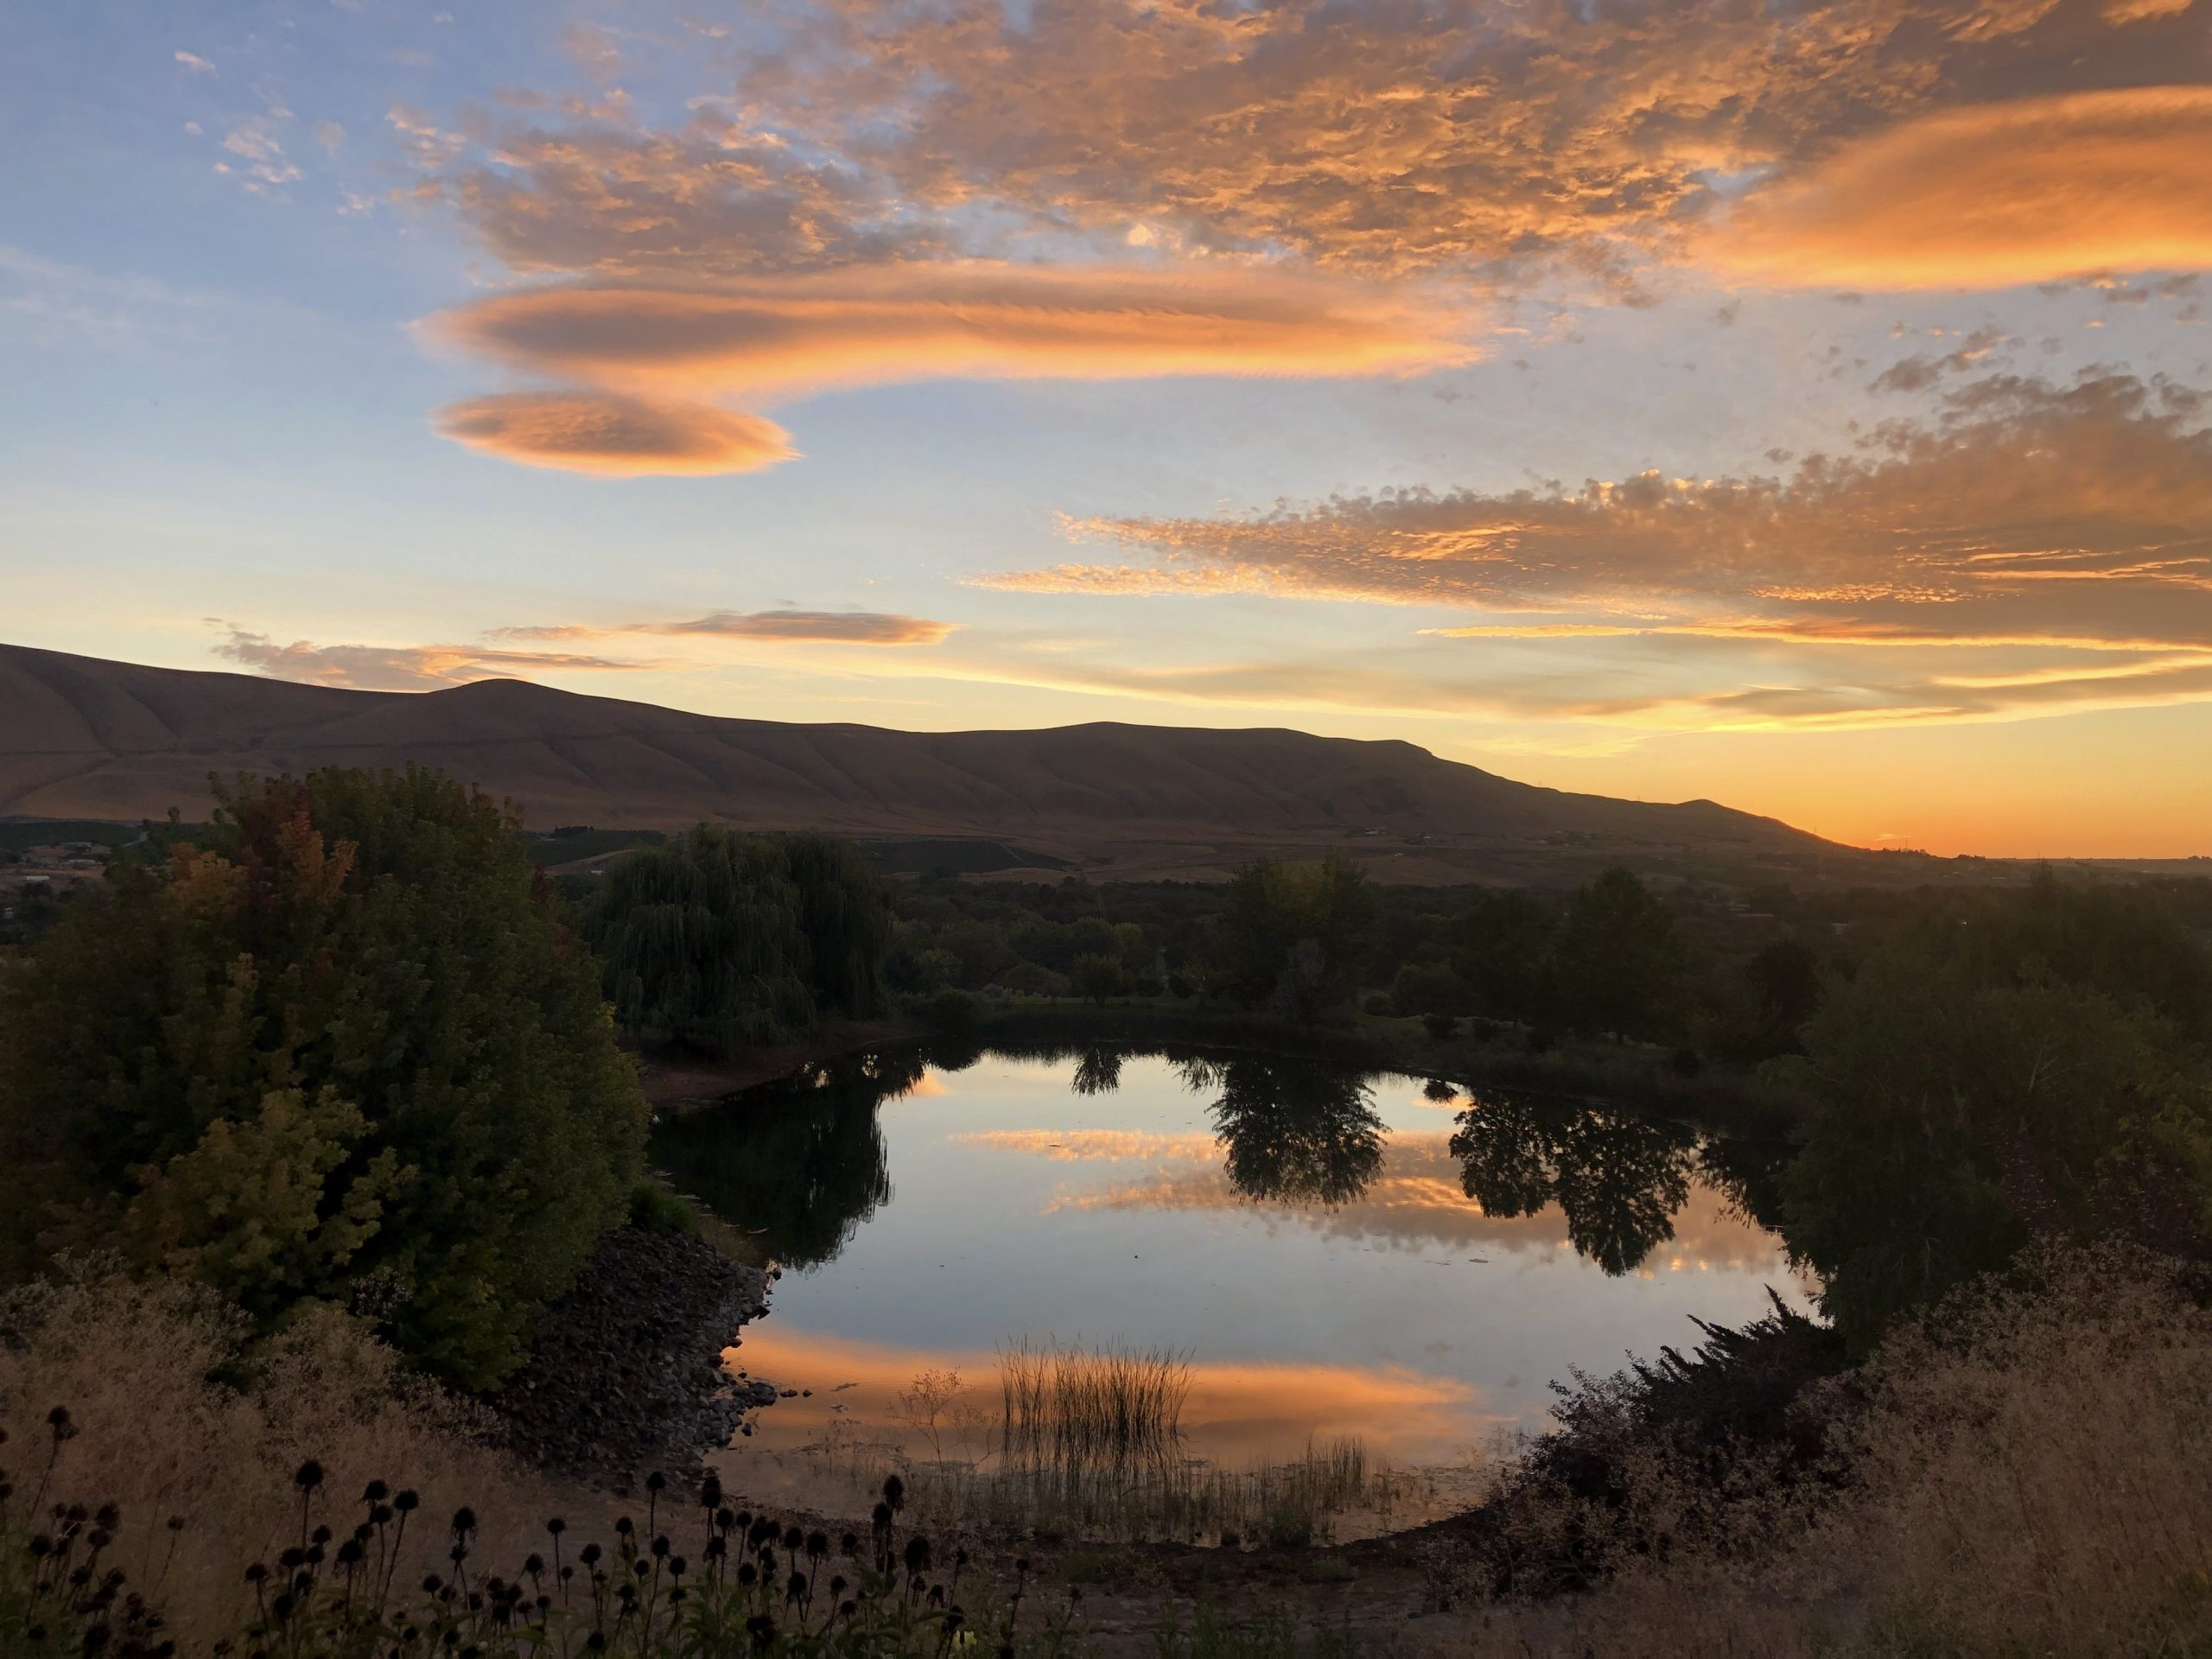 a photo of hills and trees in Washington wine country at sunset. the sky is light blue with gorgeous peach-colored clouds. a pond in the foreground reflects the sky like a mirror.